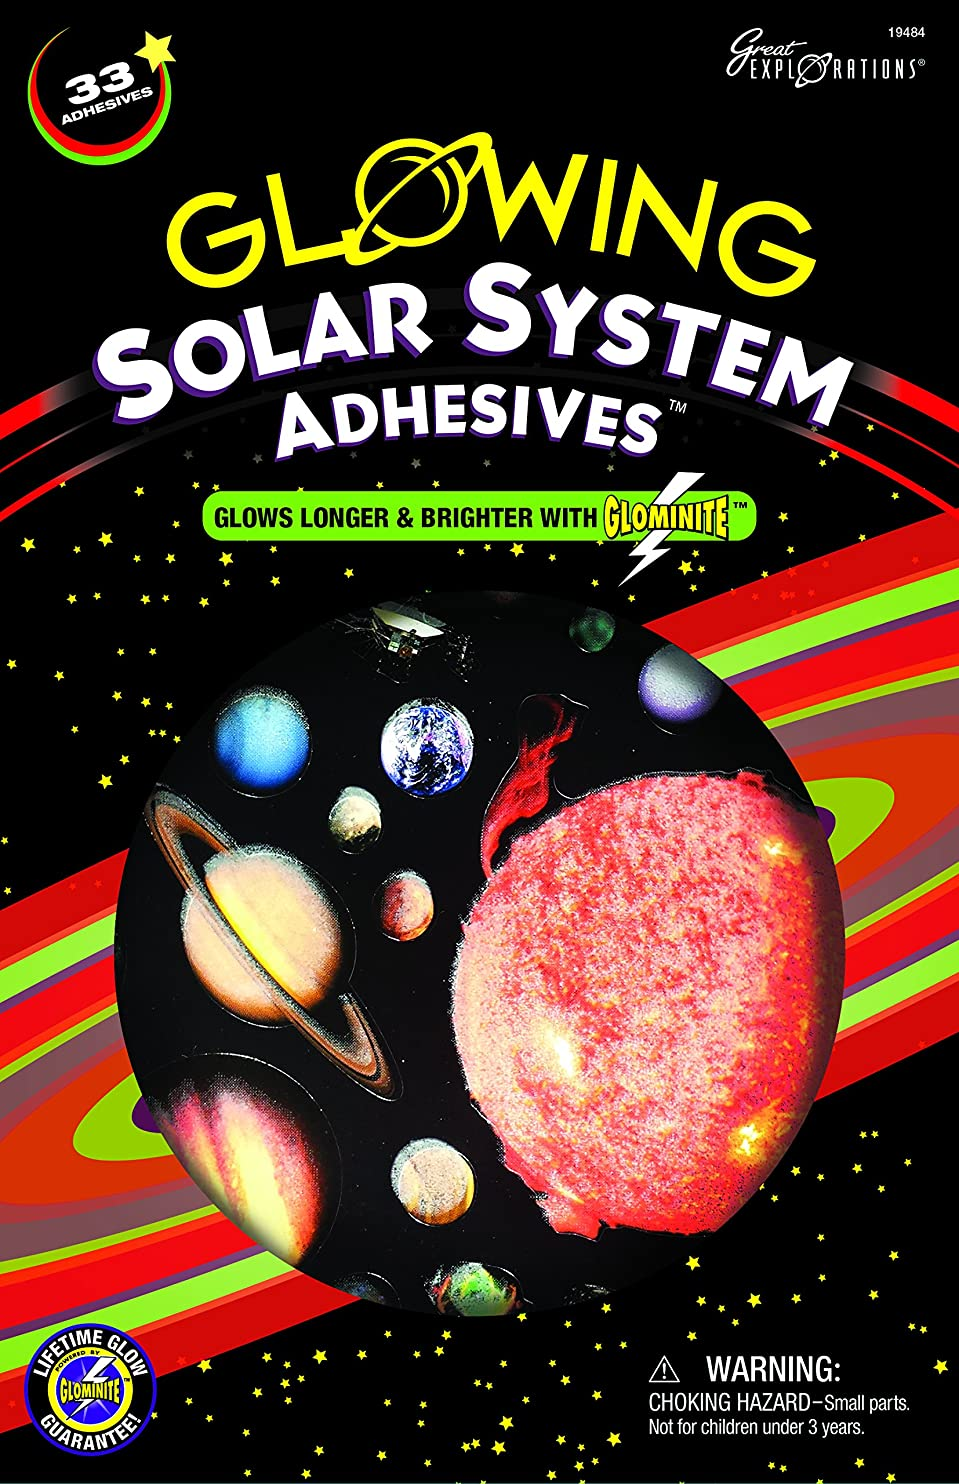 Great Explorations Solar System Adhesives oyqleryhmej51